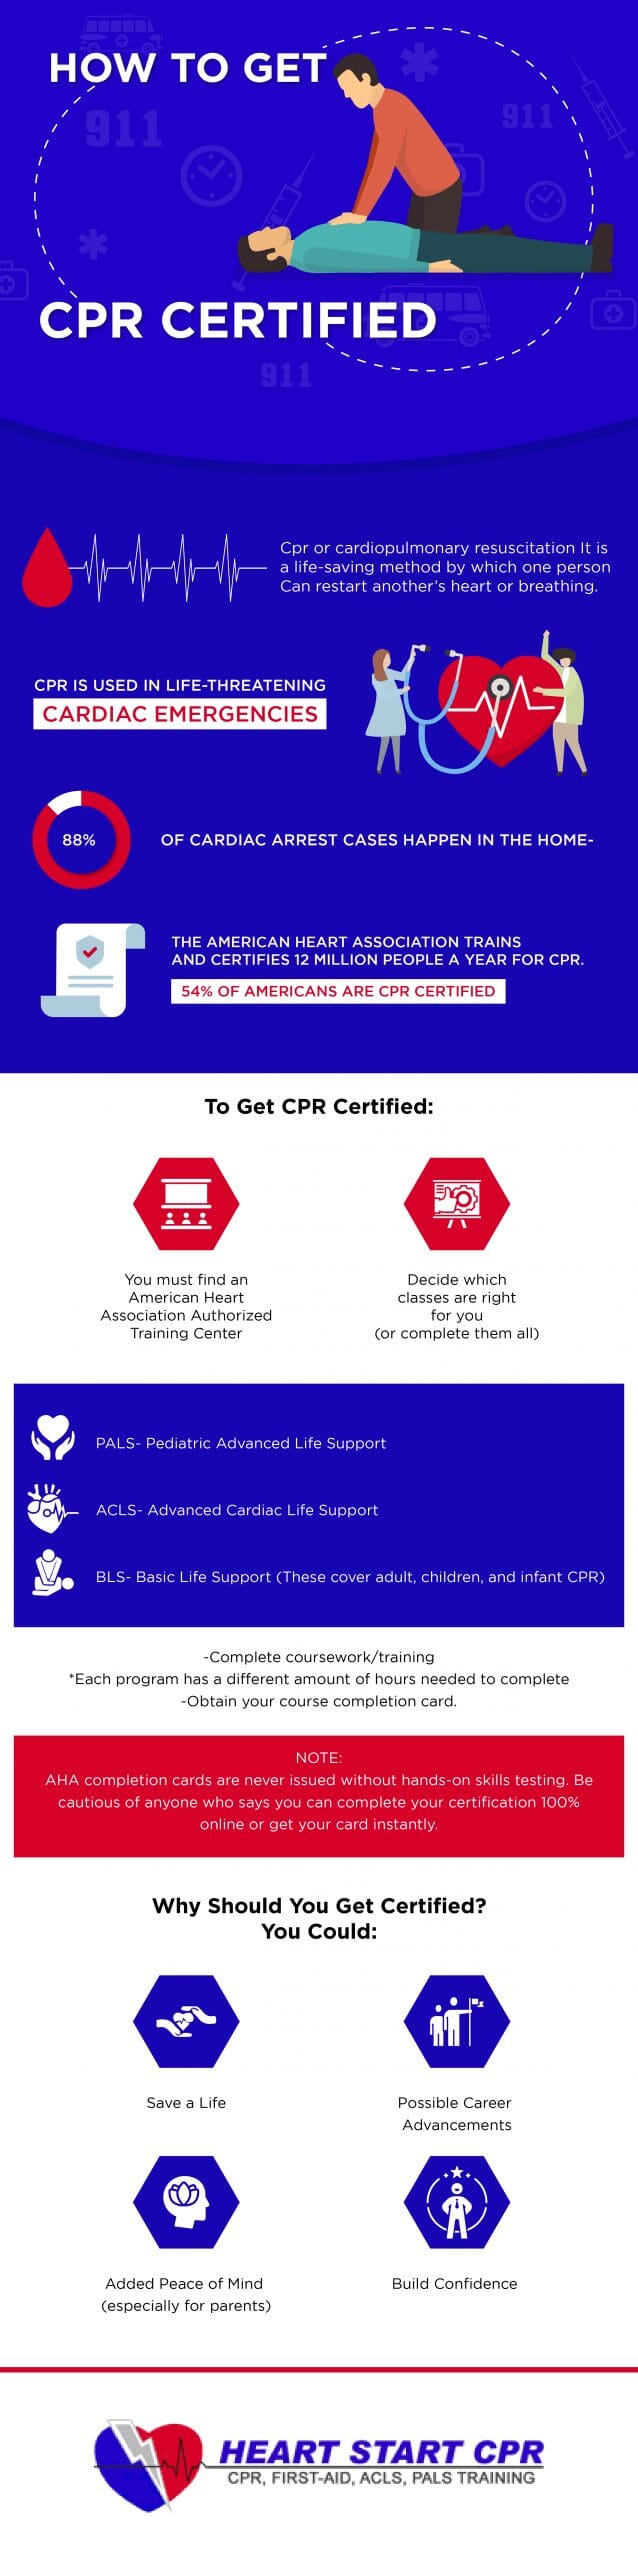 How To Get CPR Certified by Heart Start CPR